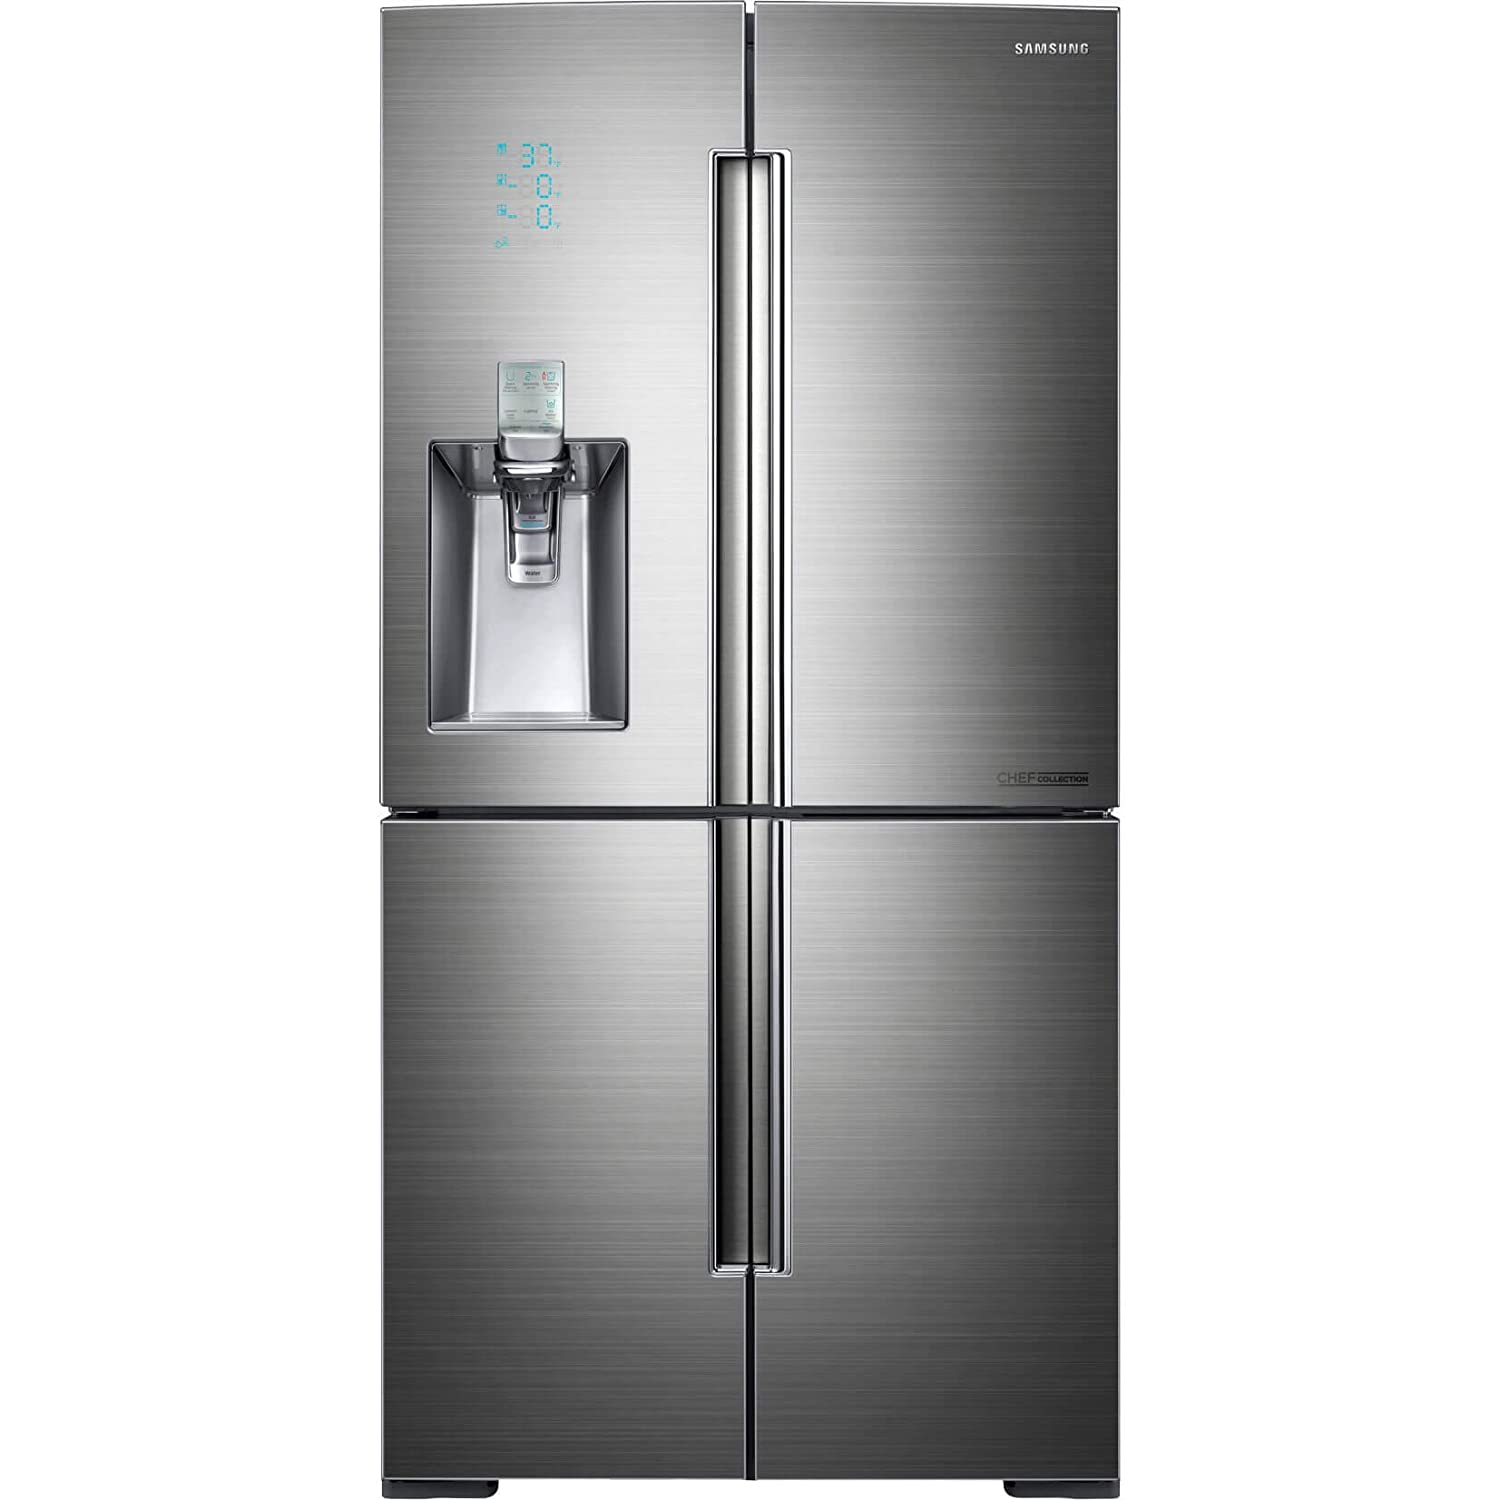 Amazon.com: Samsung rf34h9960s4 Chef Collection 34,3 CU. FT ...